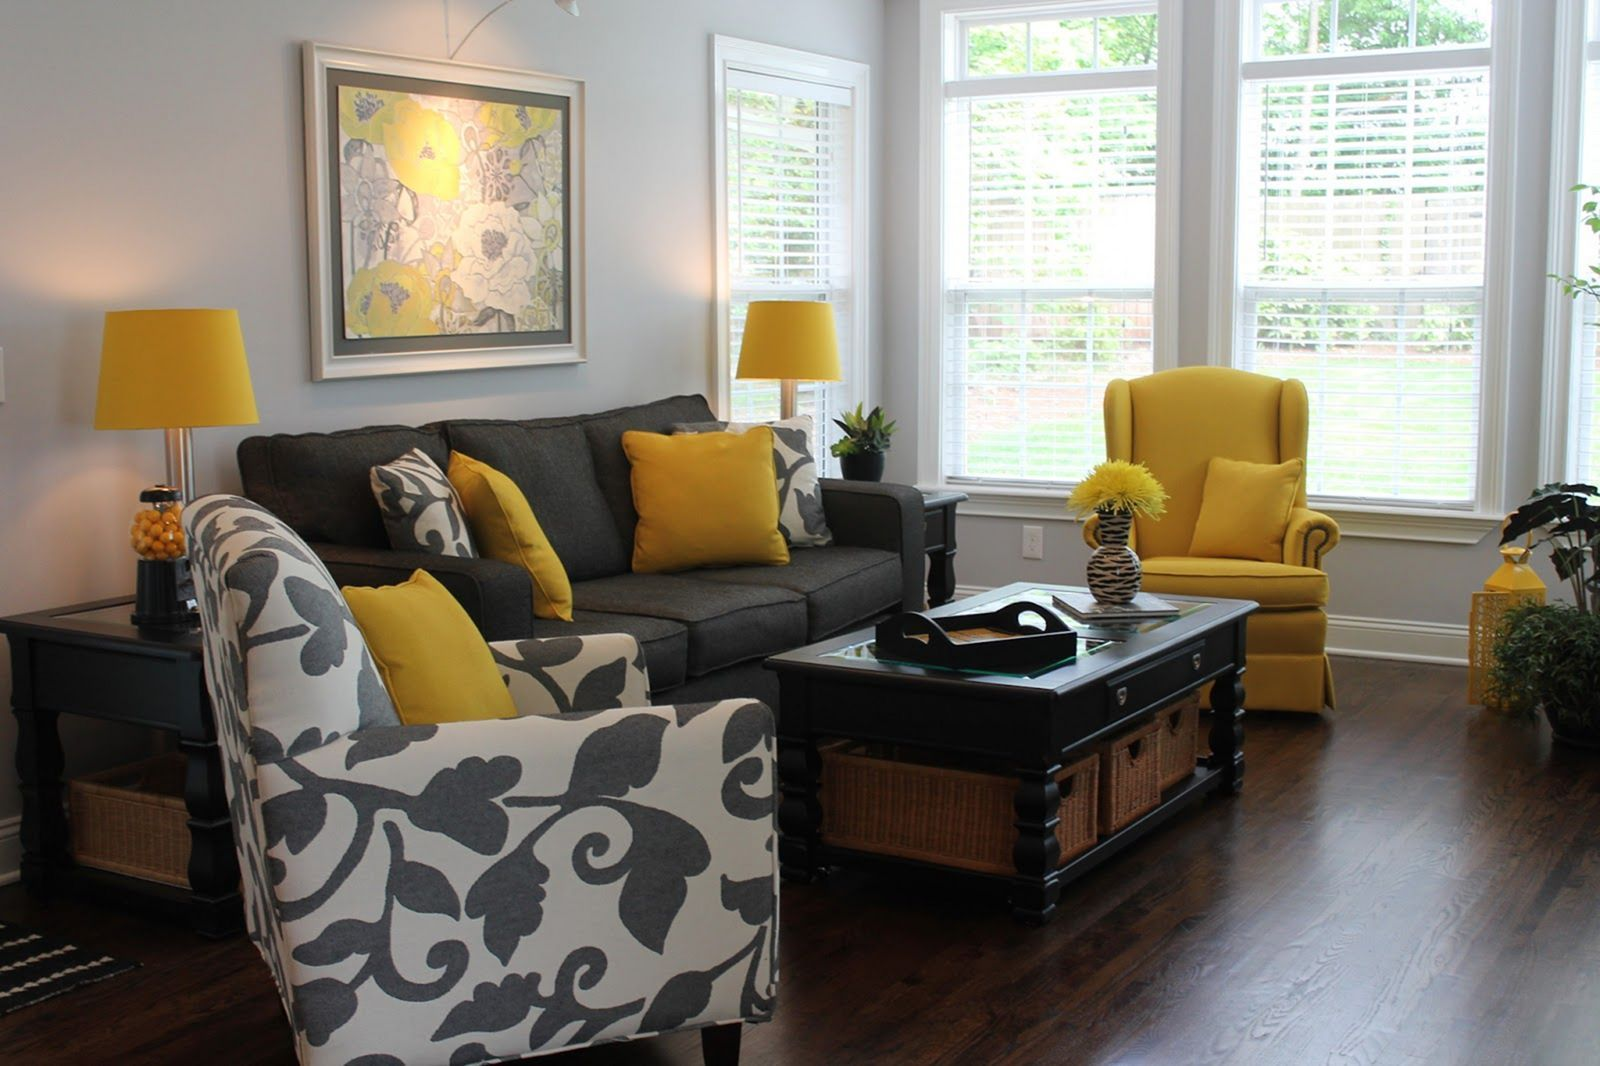 15 best interior room ideas with a stunning yellow accent